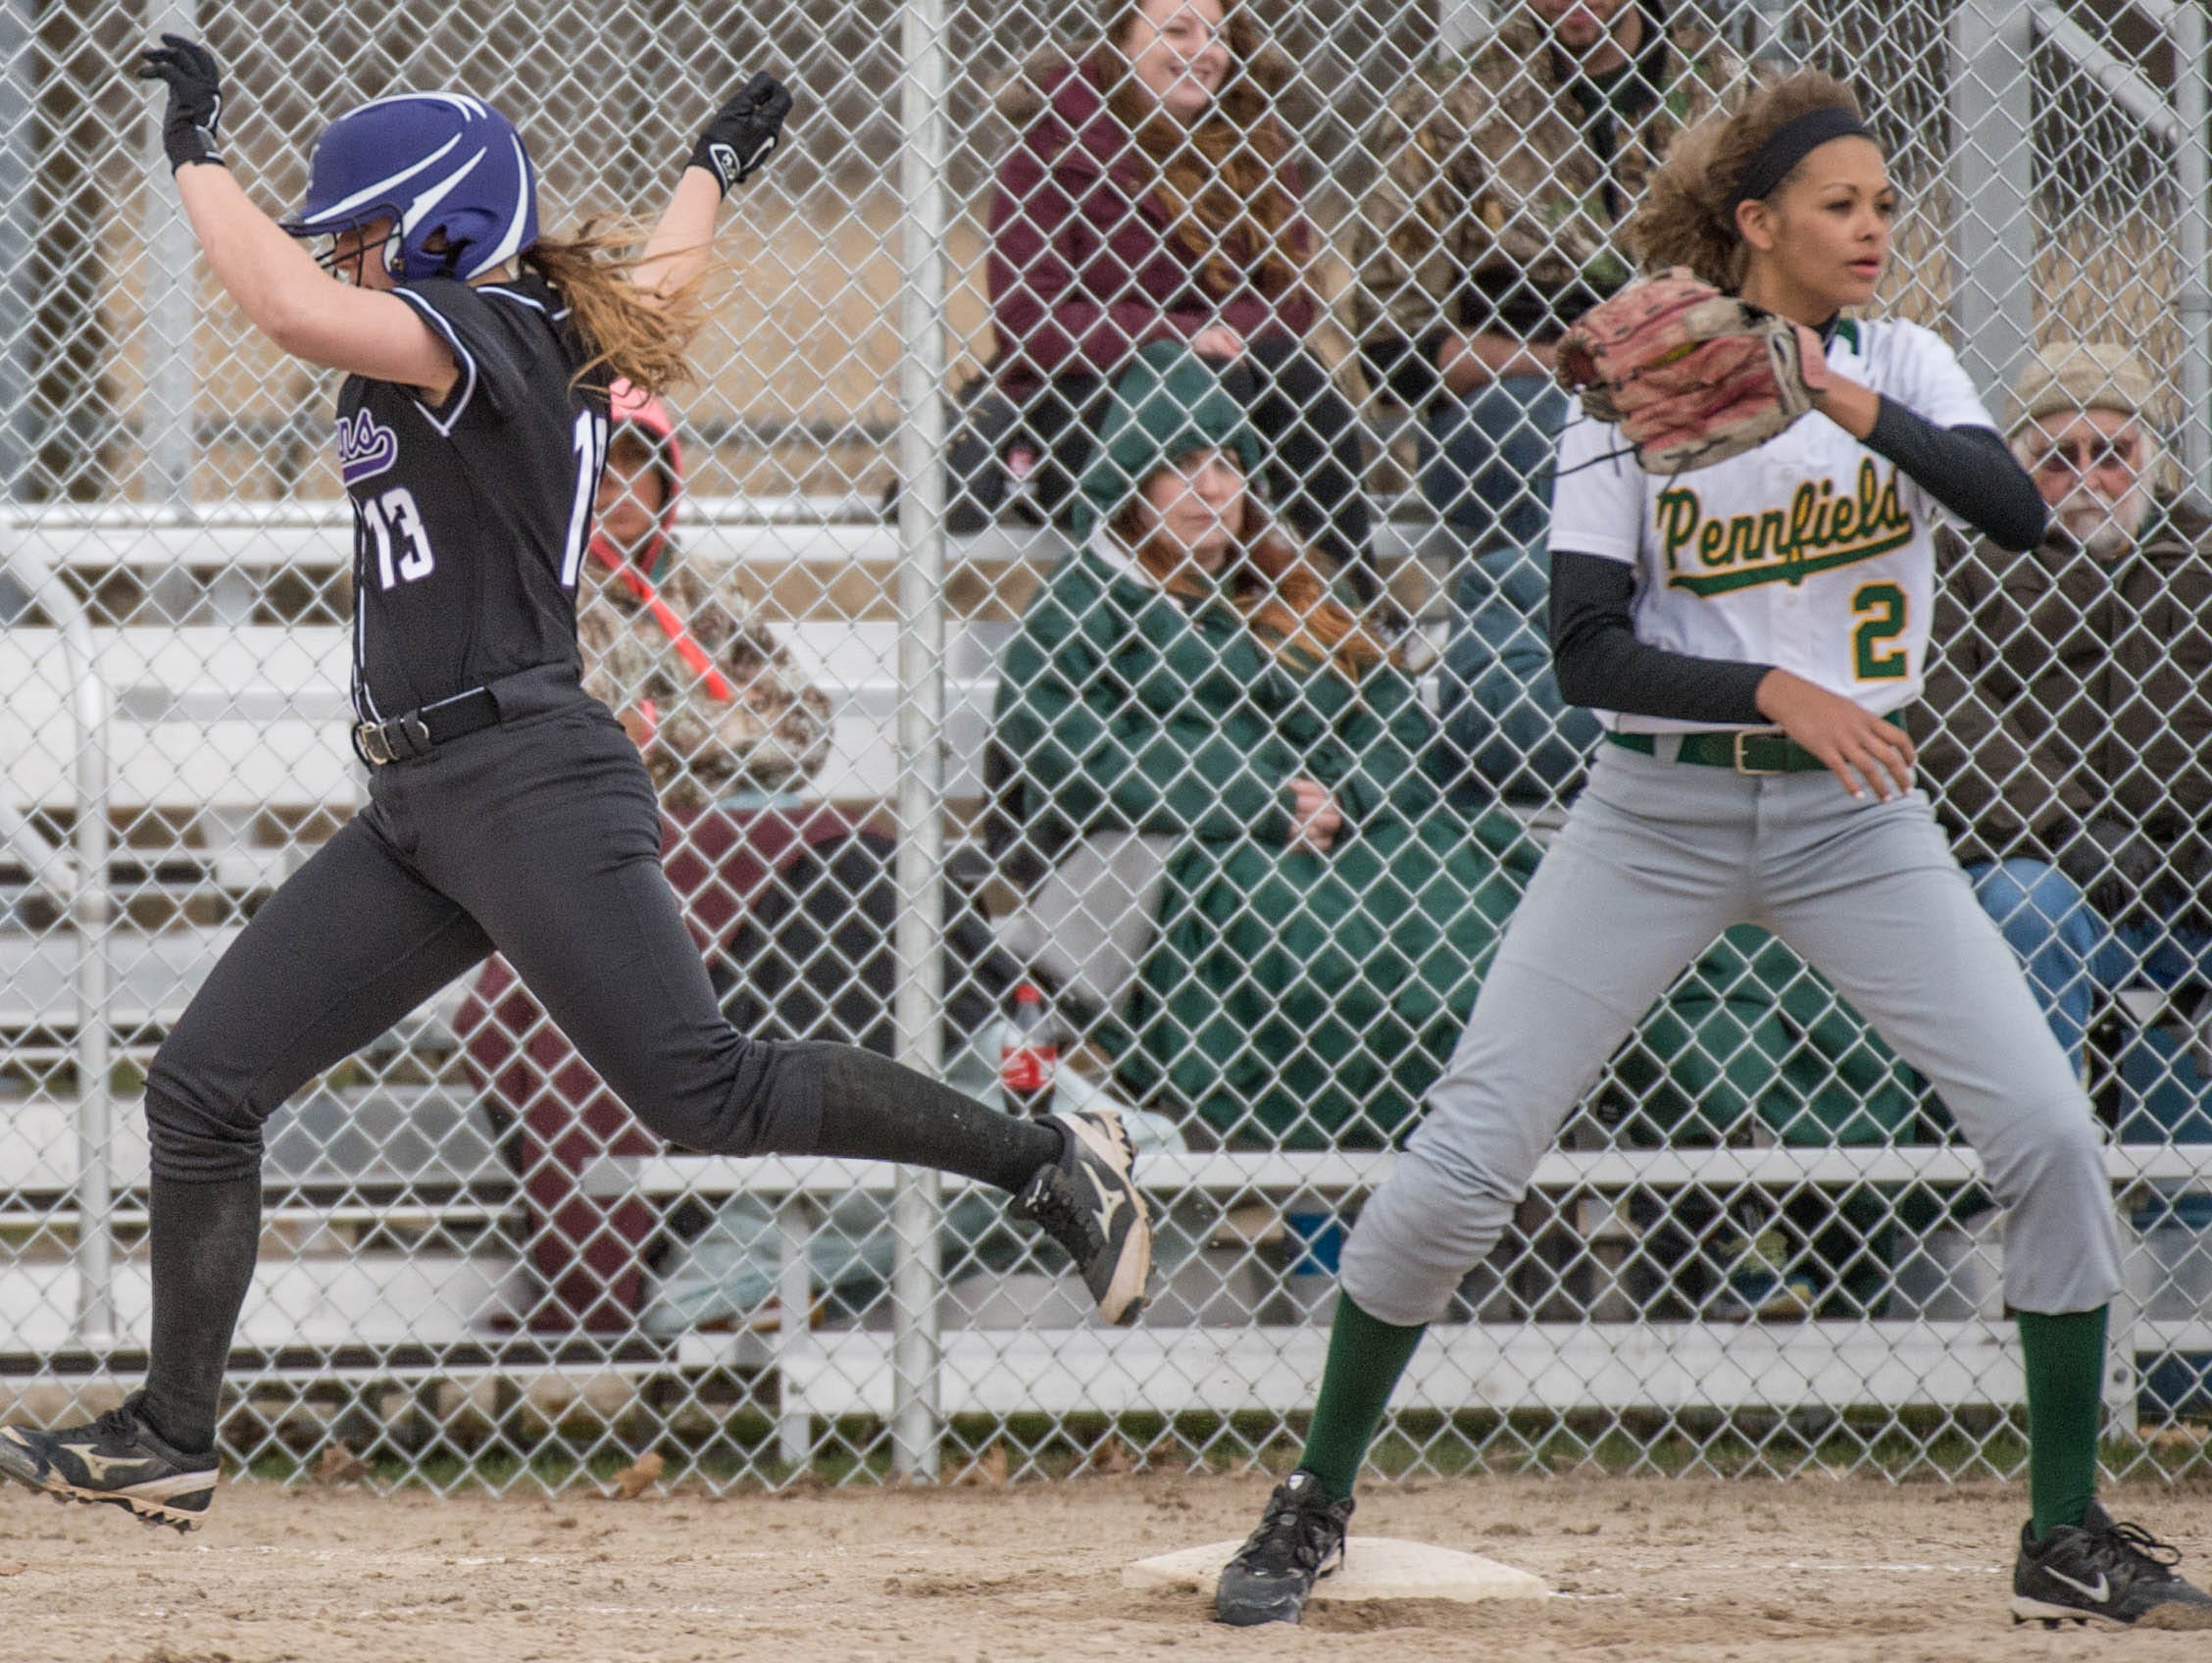 Lakeview's Maddie Wilson (13) runs to first while Pennfield's Alexa Stephenson (2) covers.